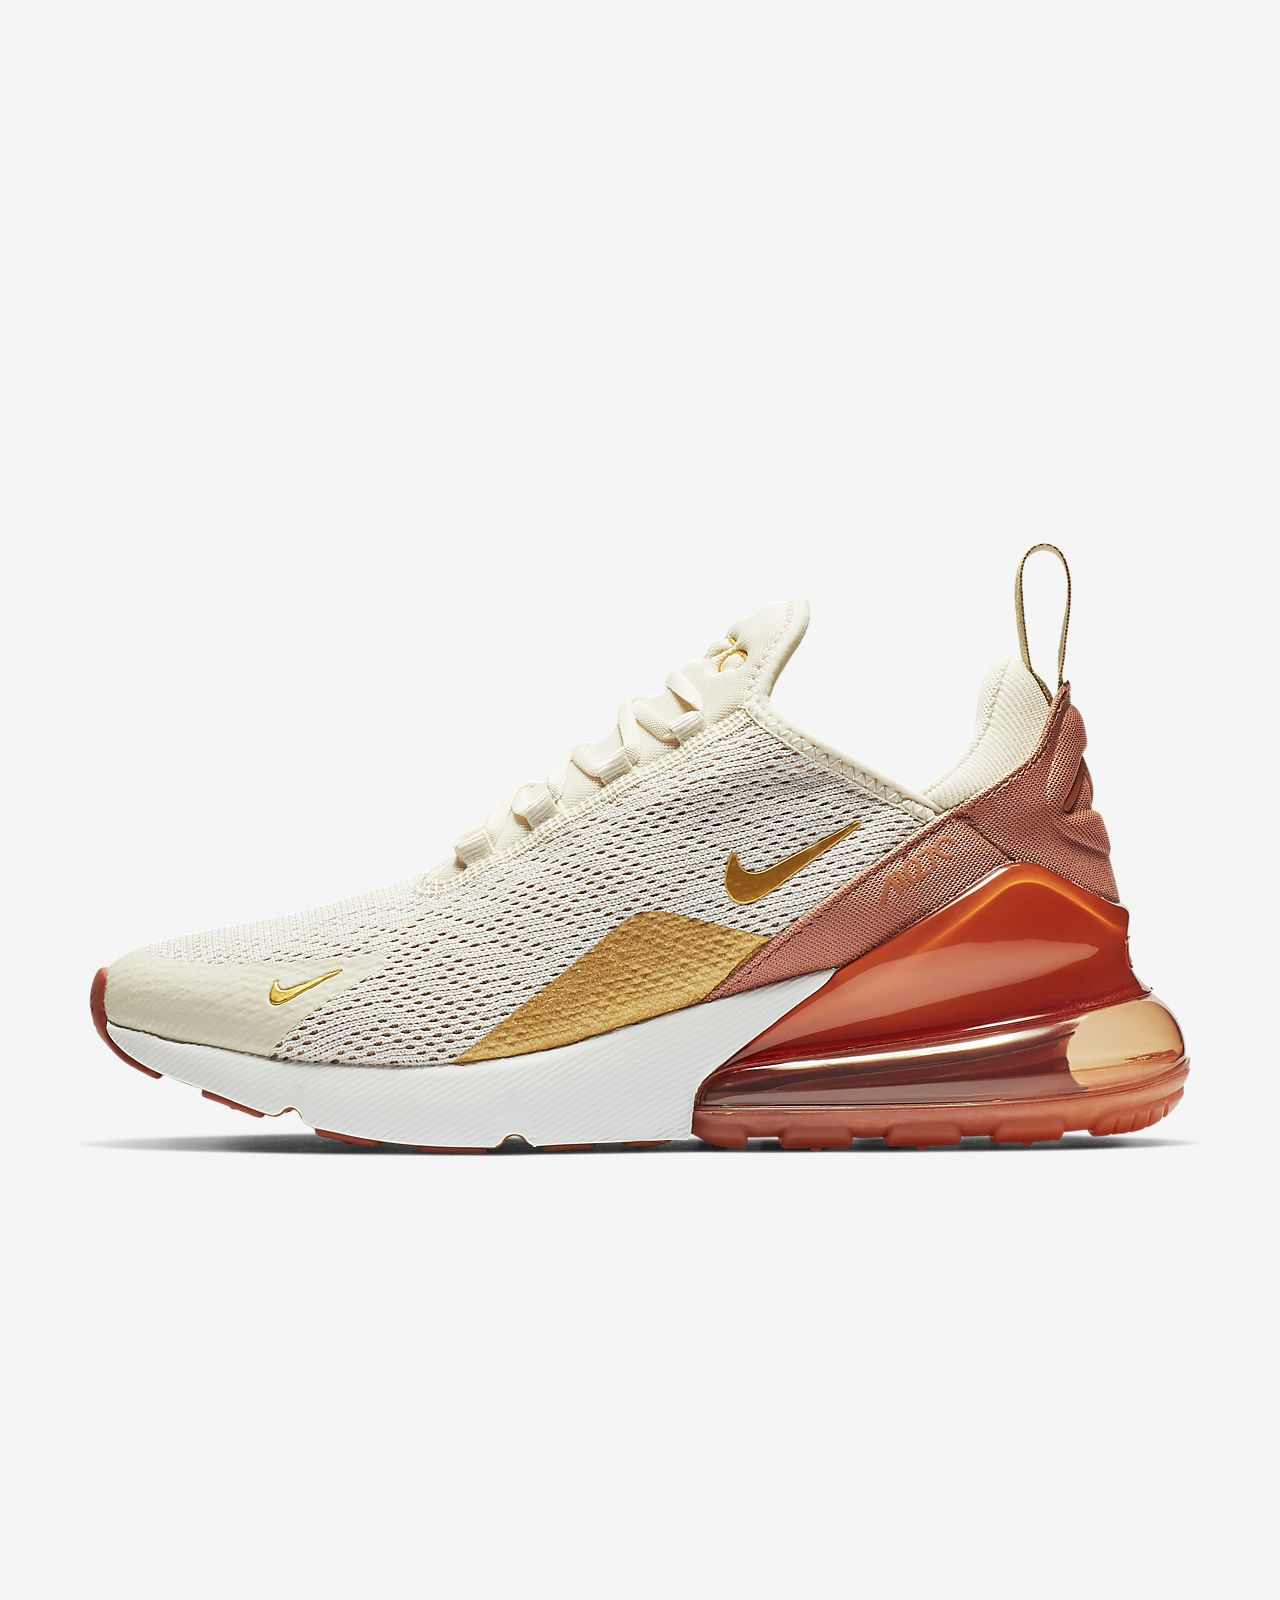 new product 8d41f cbb8d Chaussure Nike Air Max 270 pour Femme